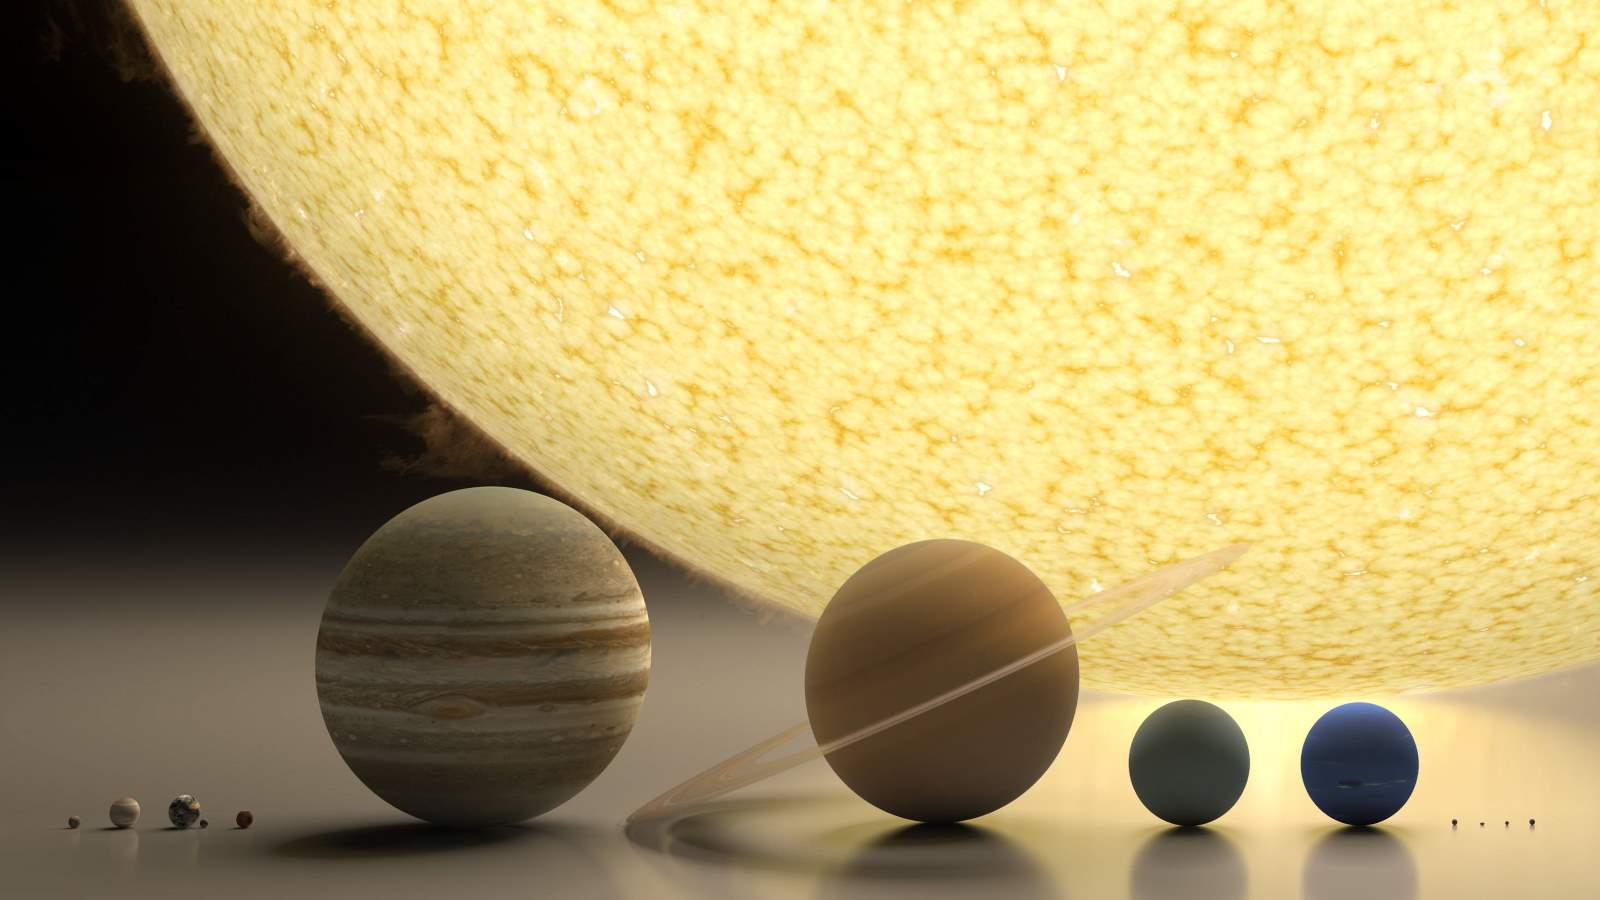 Sun, planets and dwarf planets size comparison